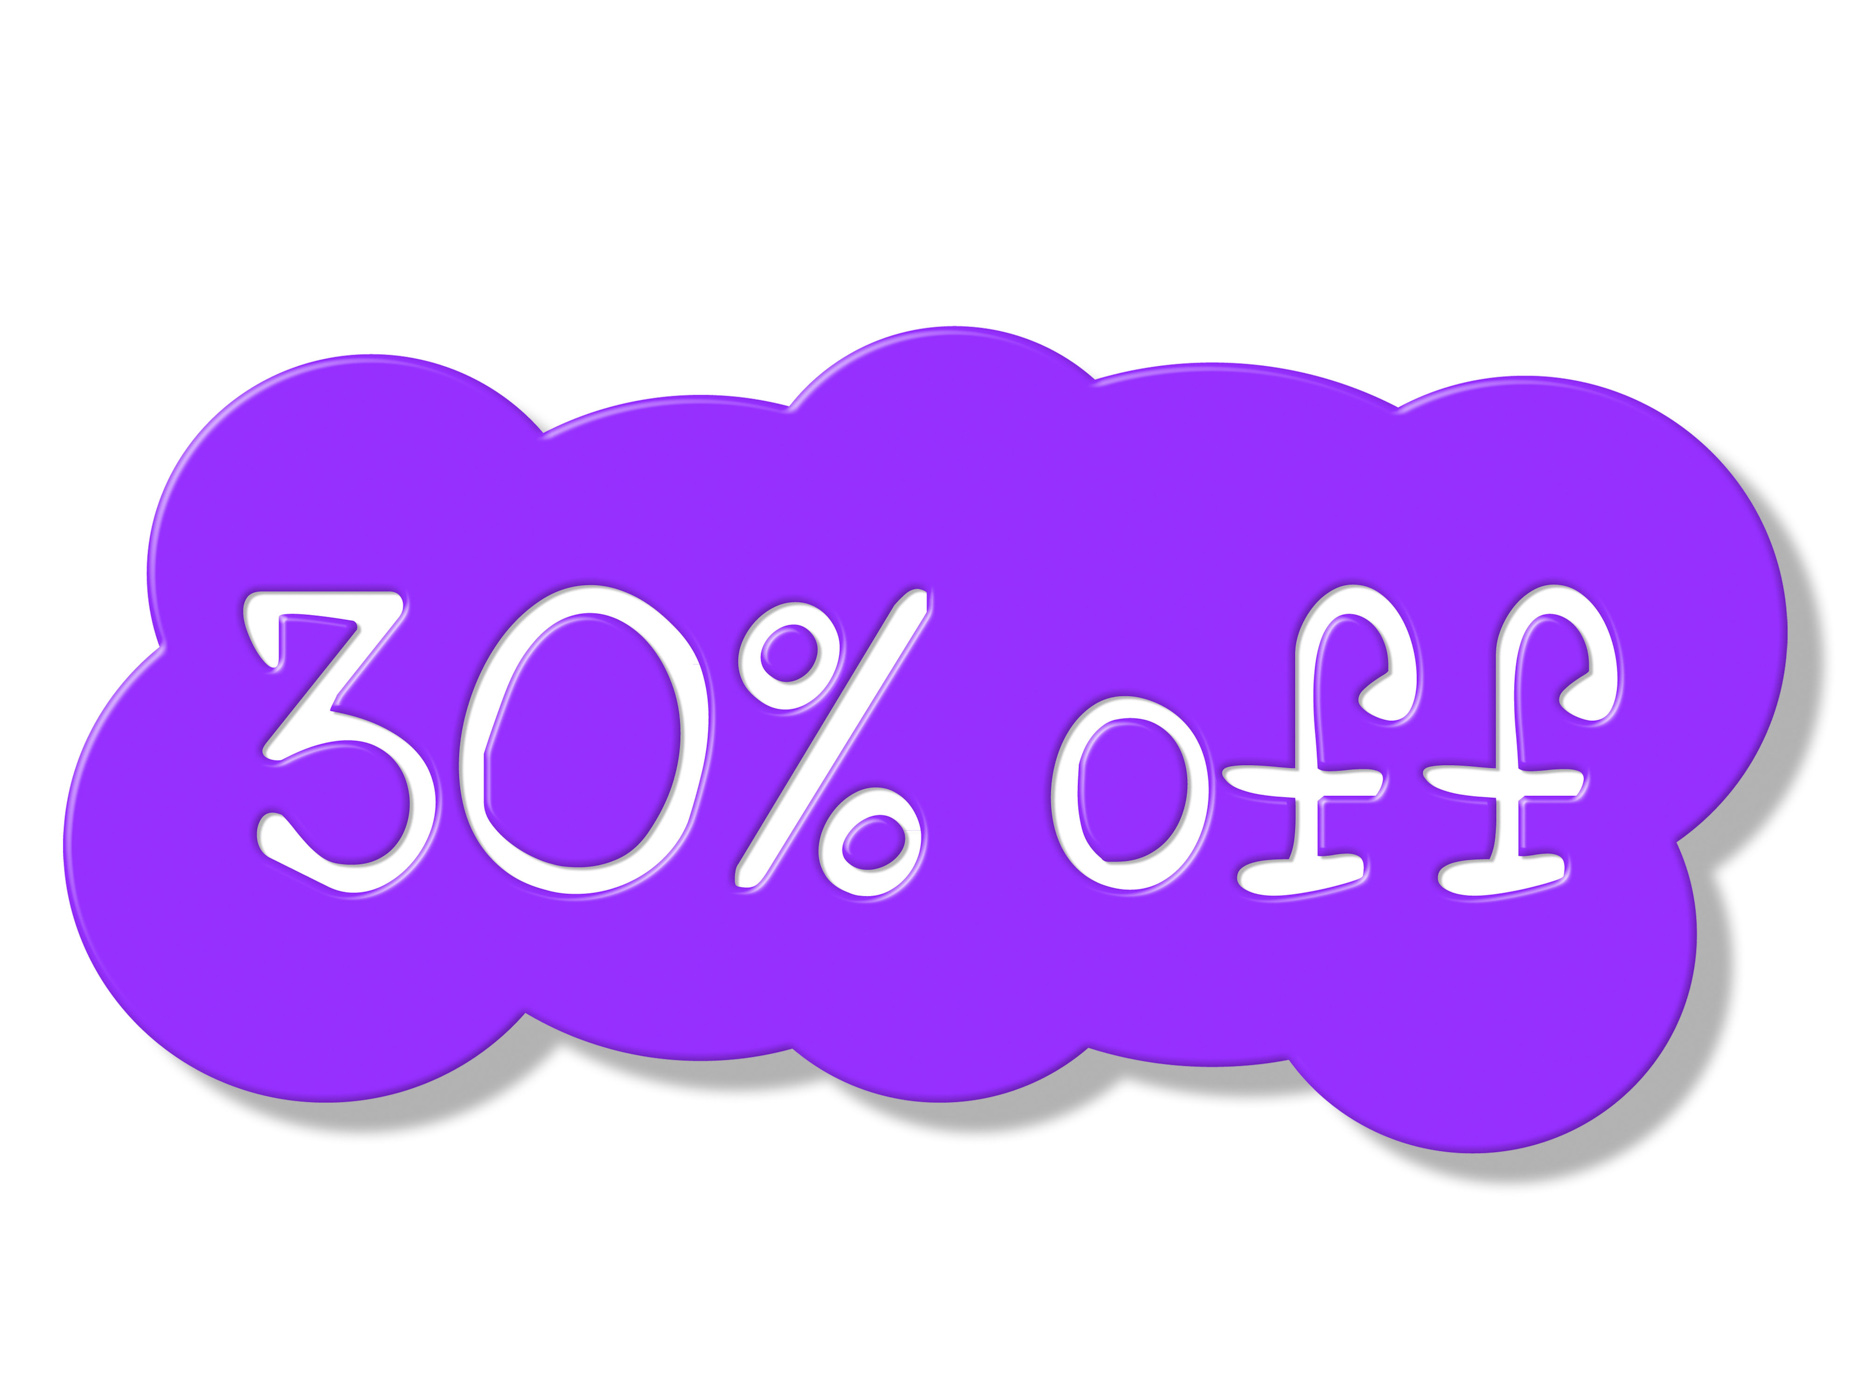 Thirty percent off shows discount savings and promotion photo